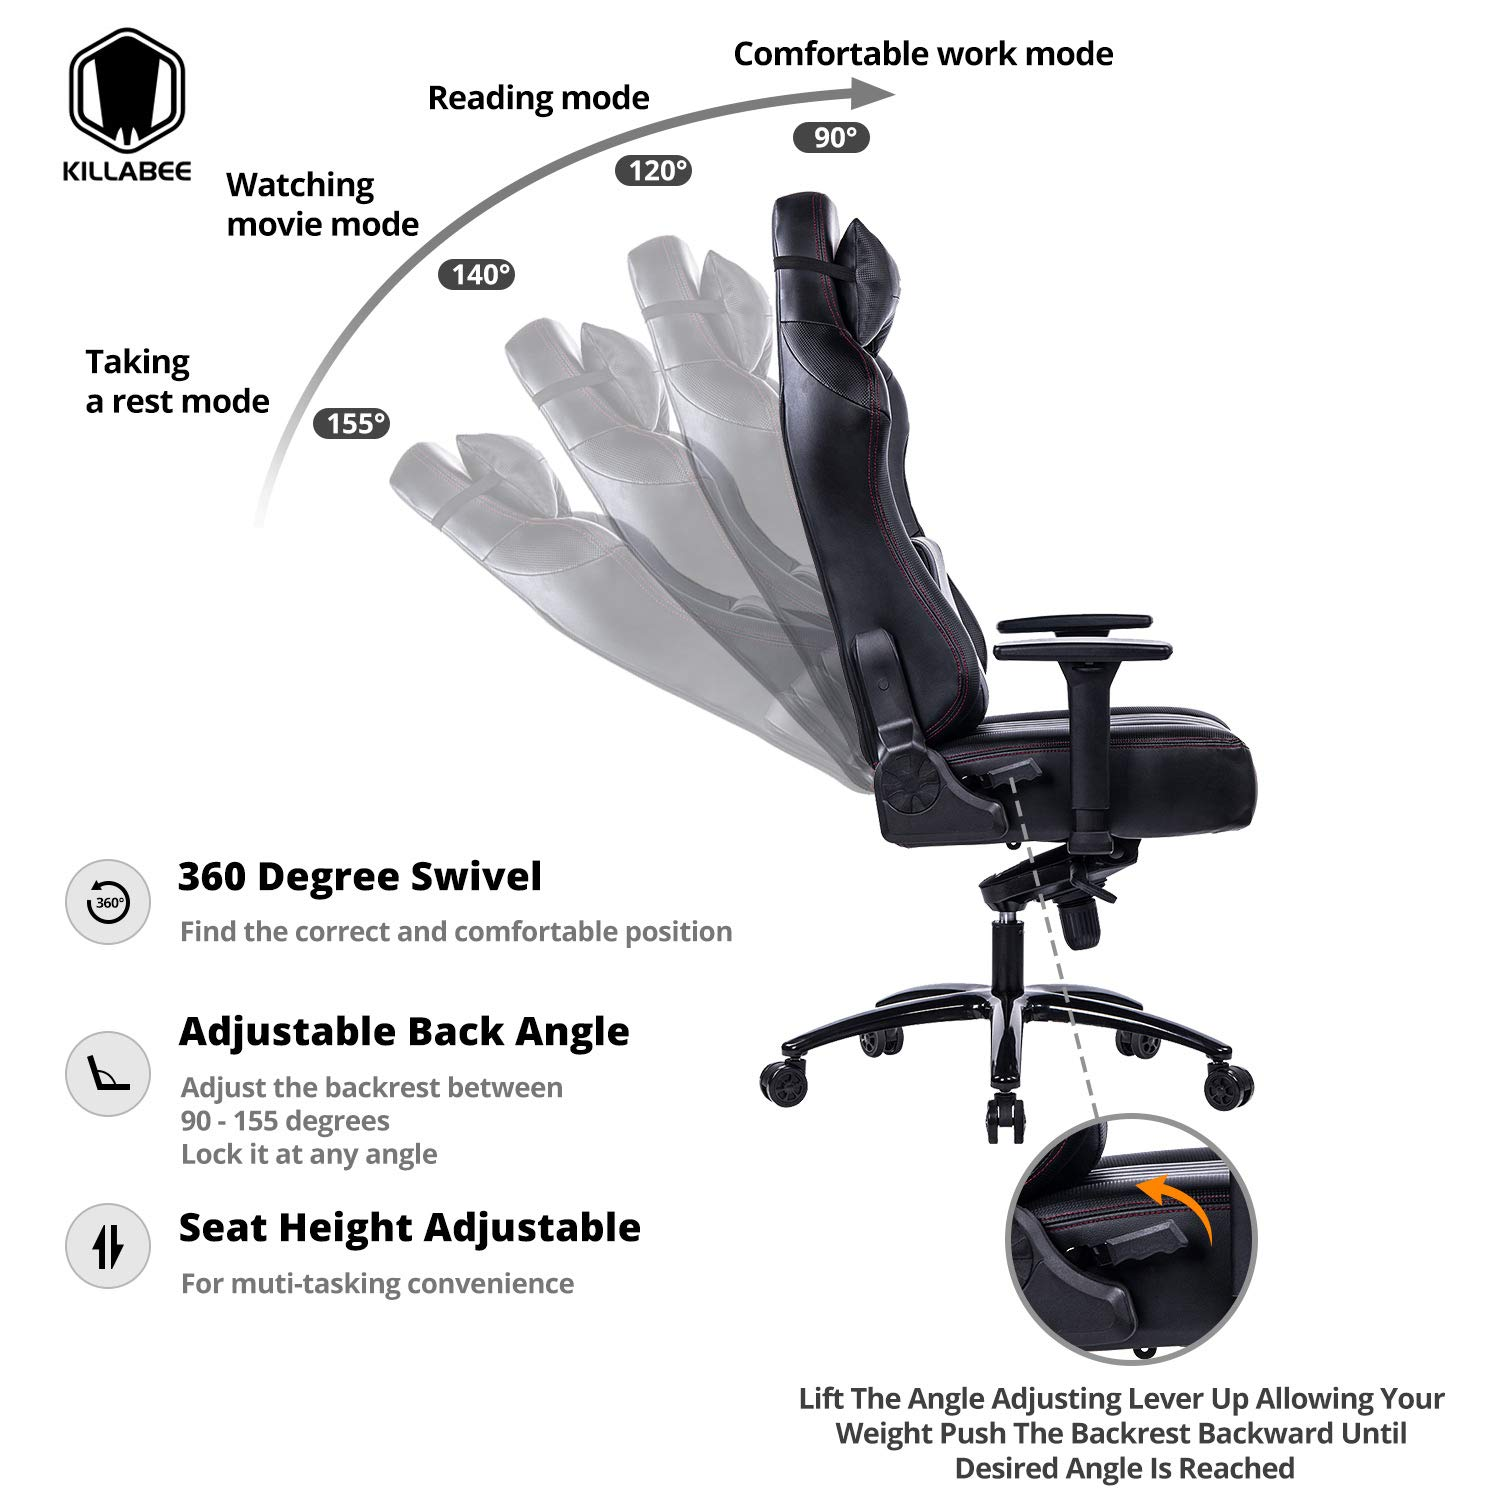 KILLABEE Big and Tall 400lb Memory Foam Gaming Chair - Adjustable Tilt, Back Angle and 3D Arms Ergonomic High-Back Leather Racing Executive Computer Desk Office Chair Metal Base, Black by KILLABEE (Image #2)